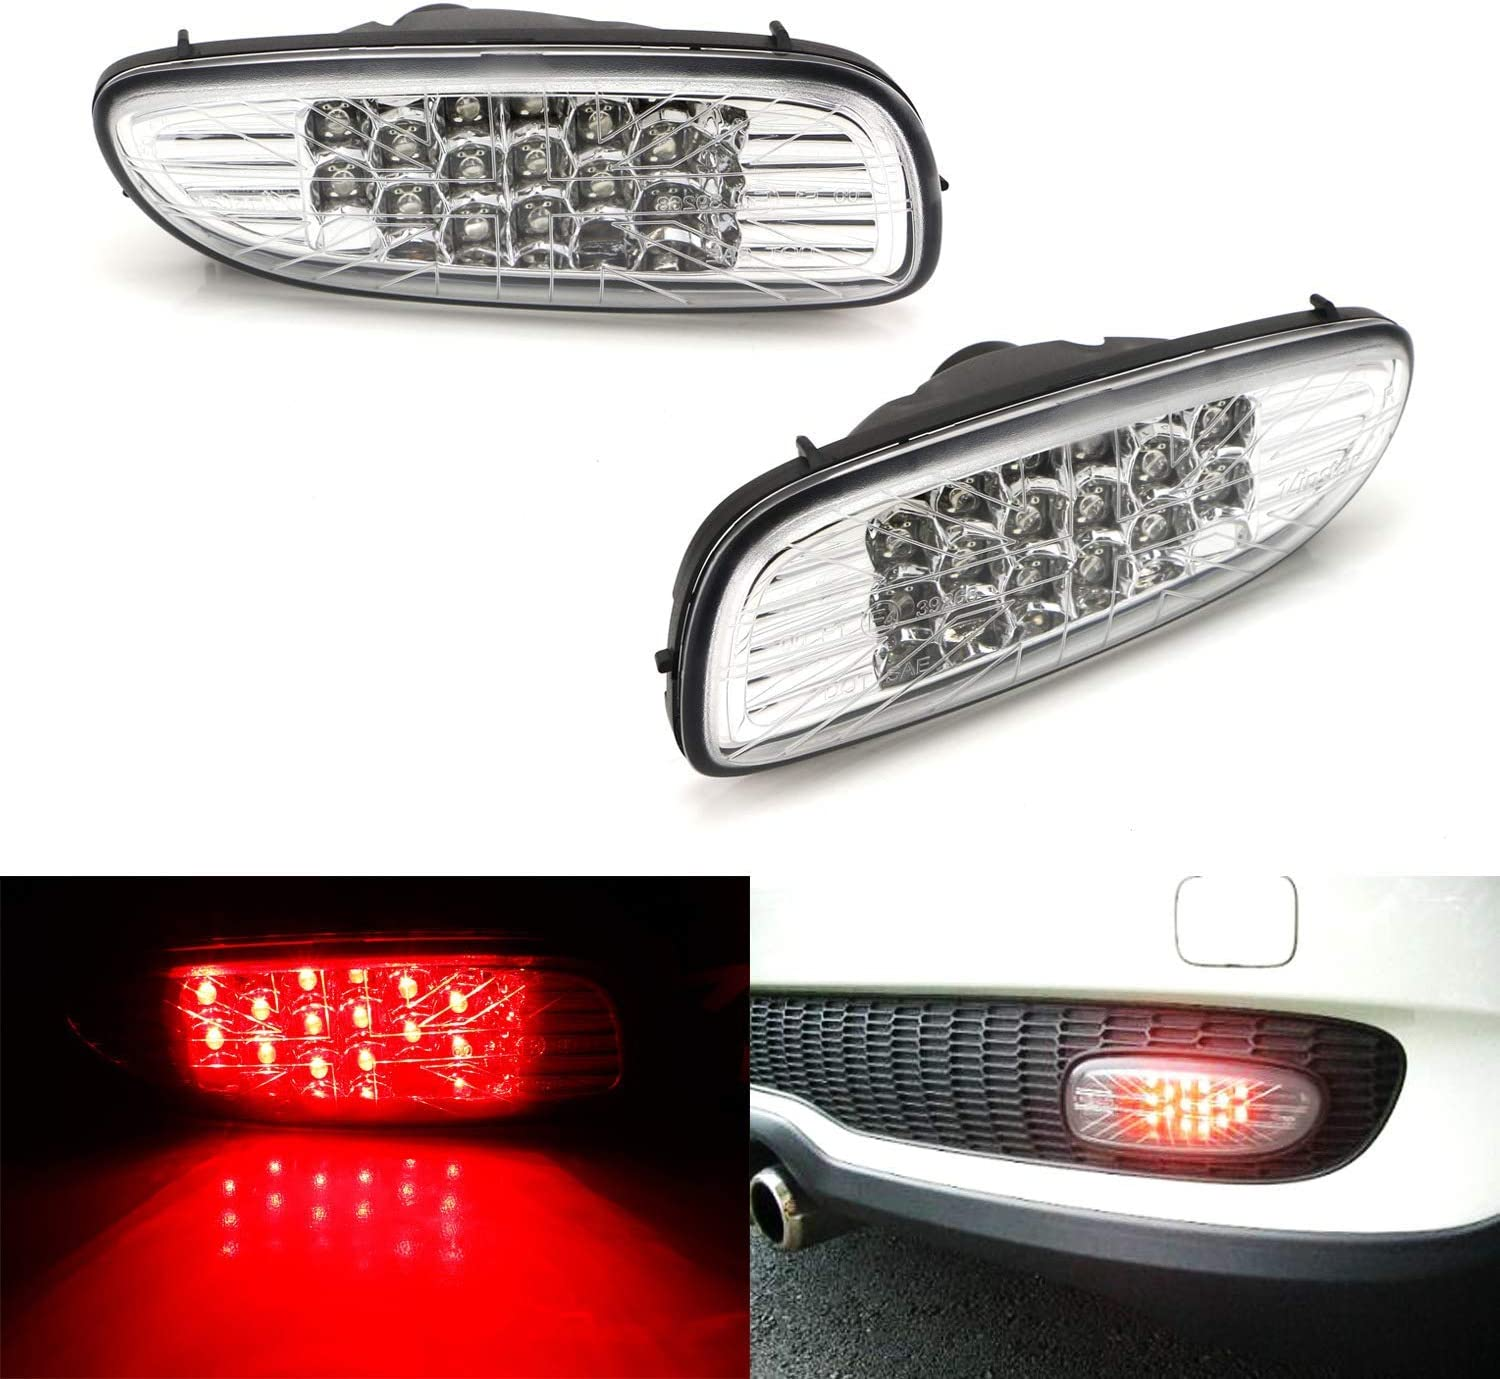 iJDMTOY 完全送料無料 定番スタイル Clear Lens LED Rear Fog Compatible Running wi Assy Lamps